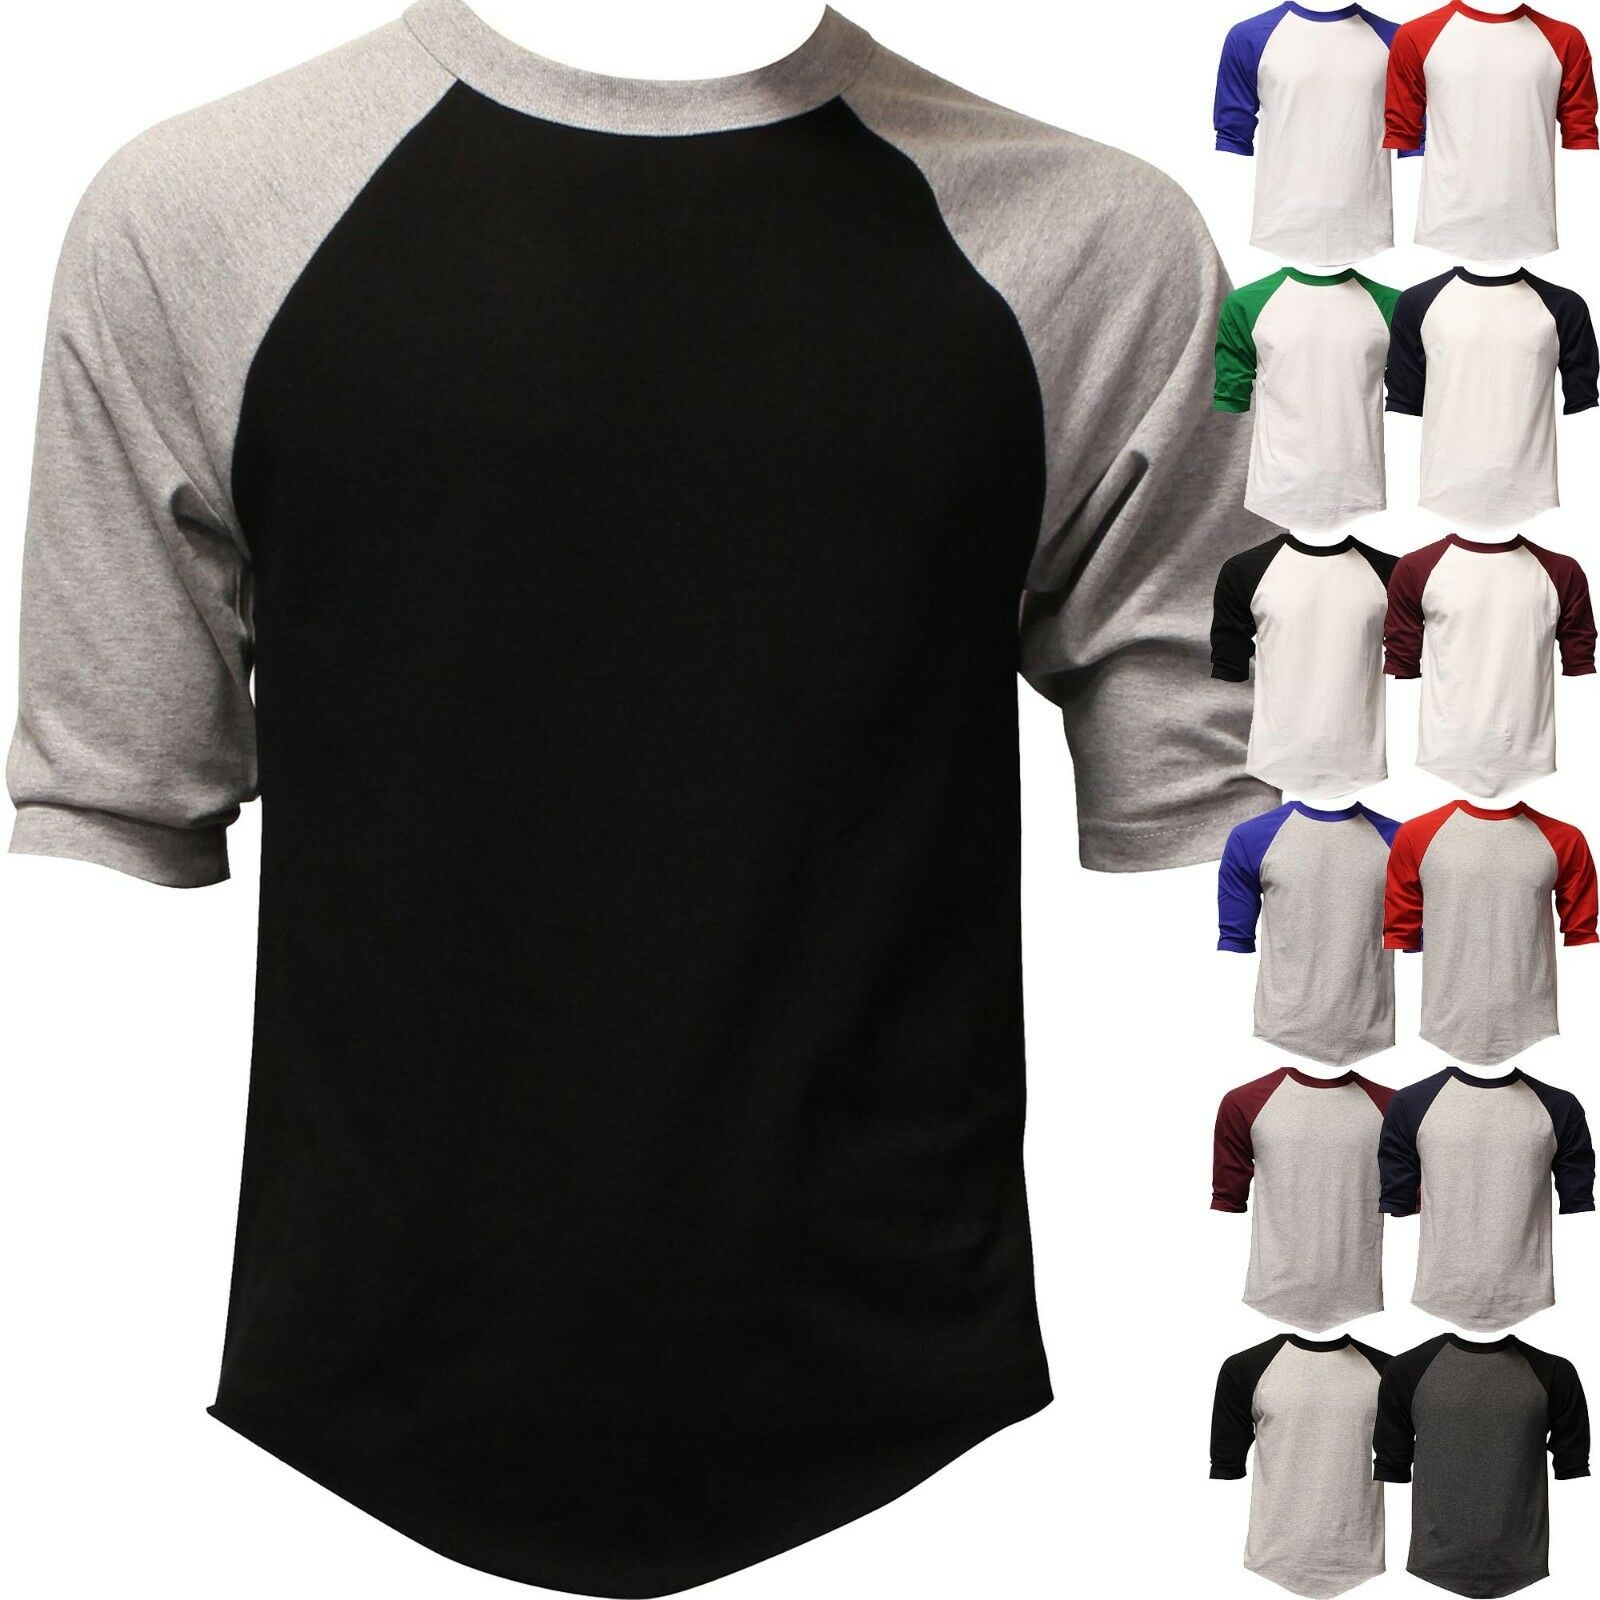 dfa06ce3 Mens 3 4 Length Sleeve Raglan Baseball T Shirts